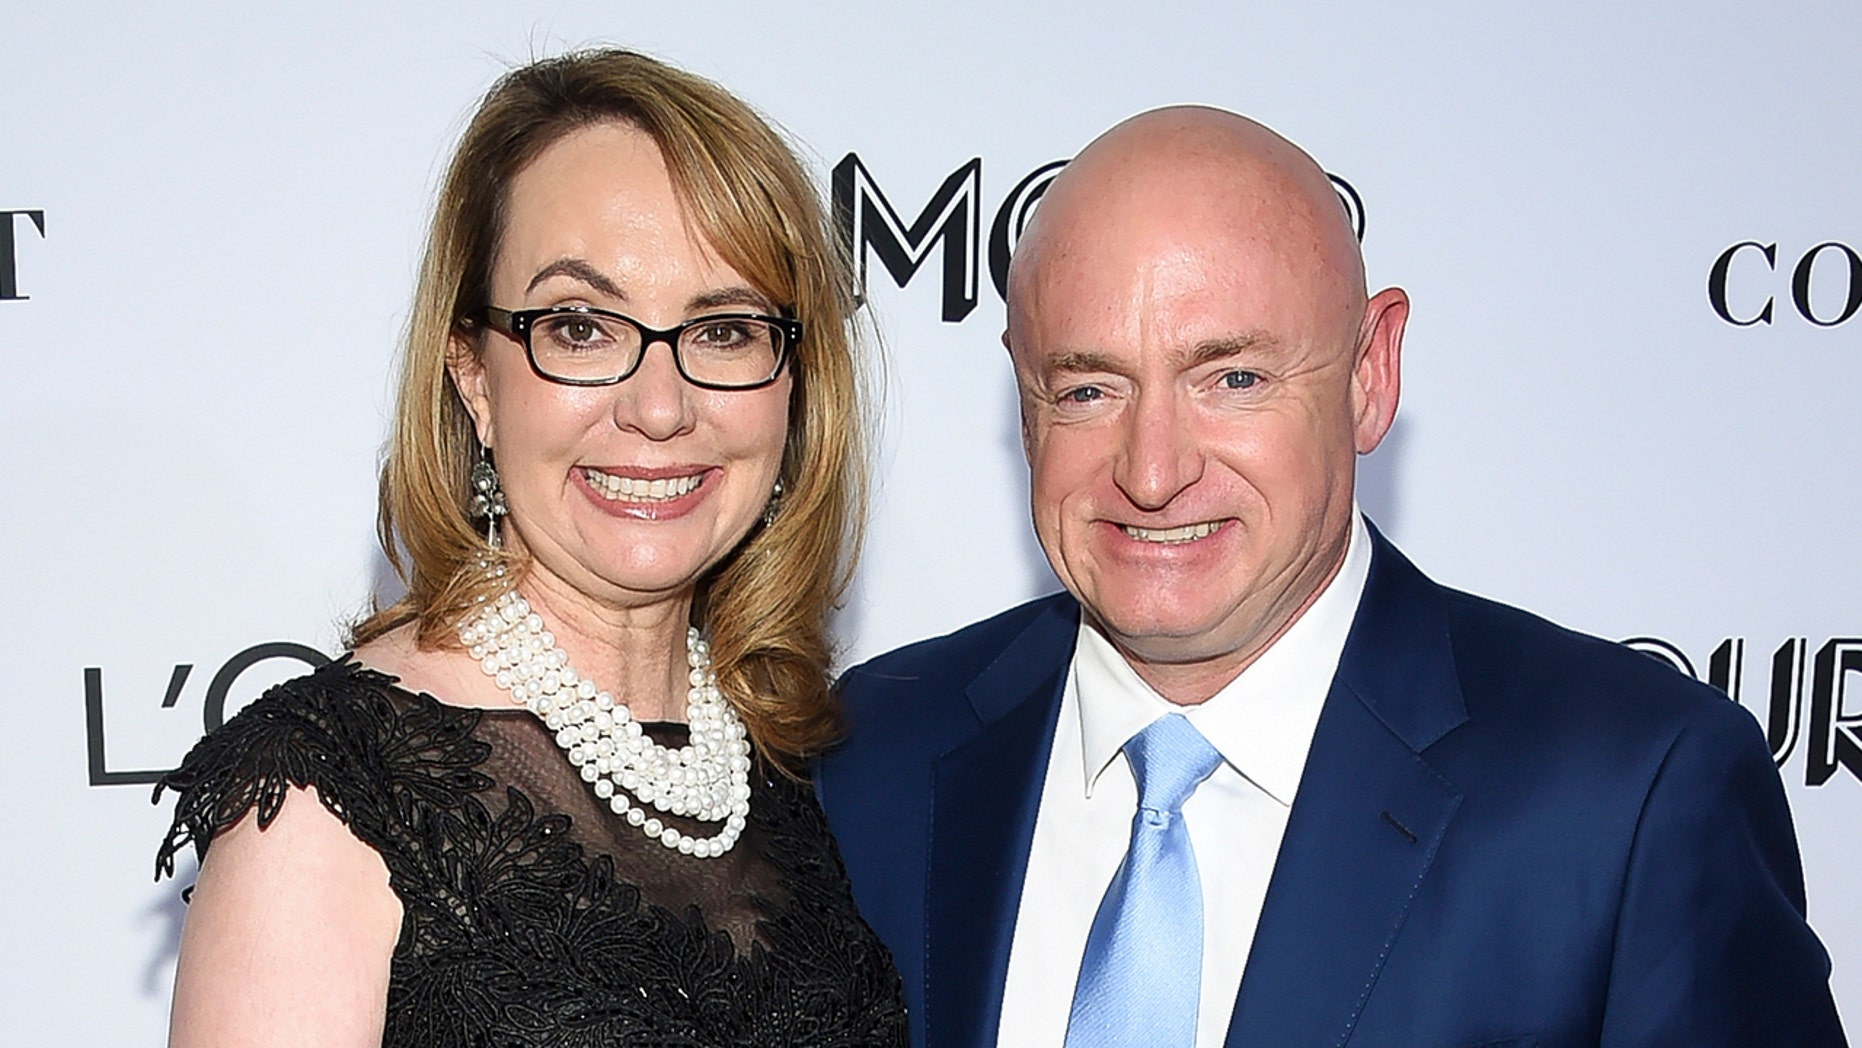 FILE- In this Nov. 12, 2018, photo, Gabrielle Giffords and husband, retired astronaut Mark Kelly, attend the Glamour Women of the Year Awards at Spring Studios in New York. (Photo by Evan Agostini/Invision/AP, File)